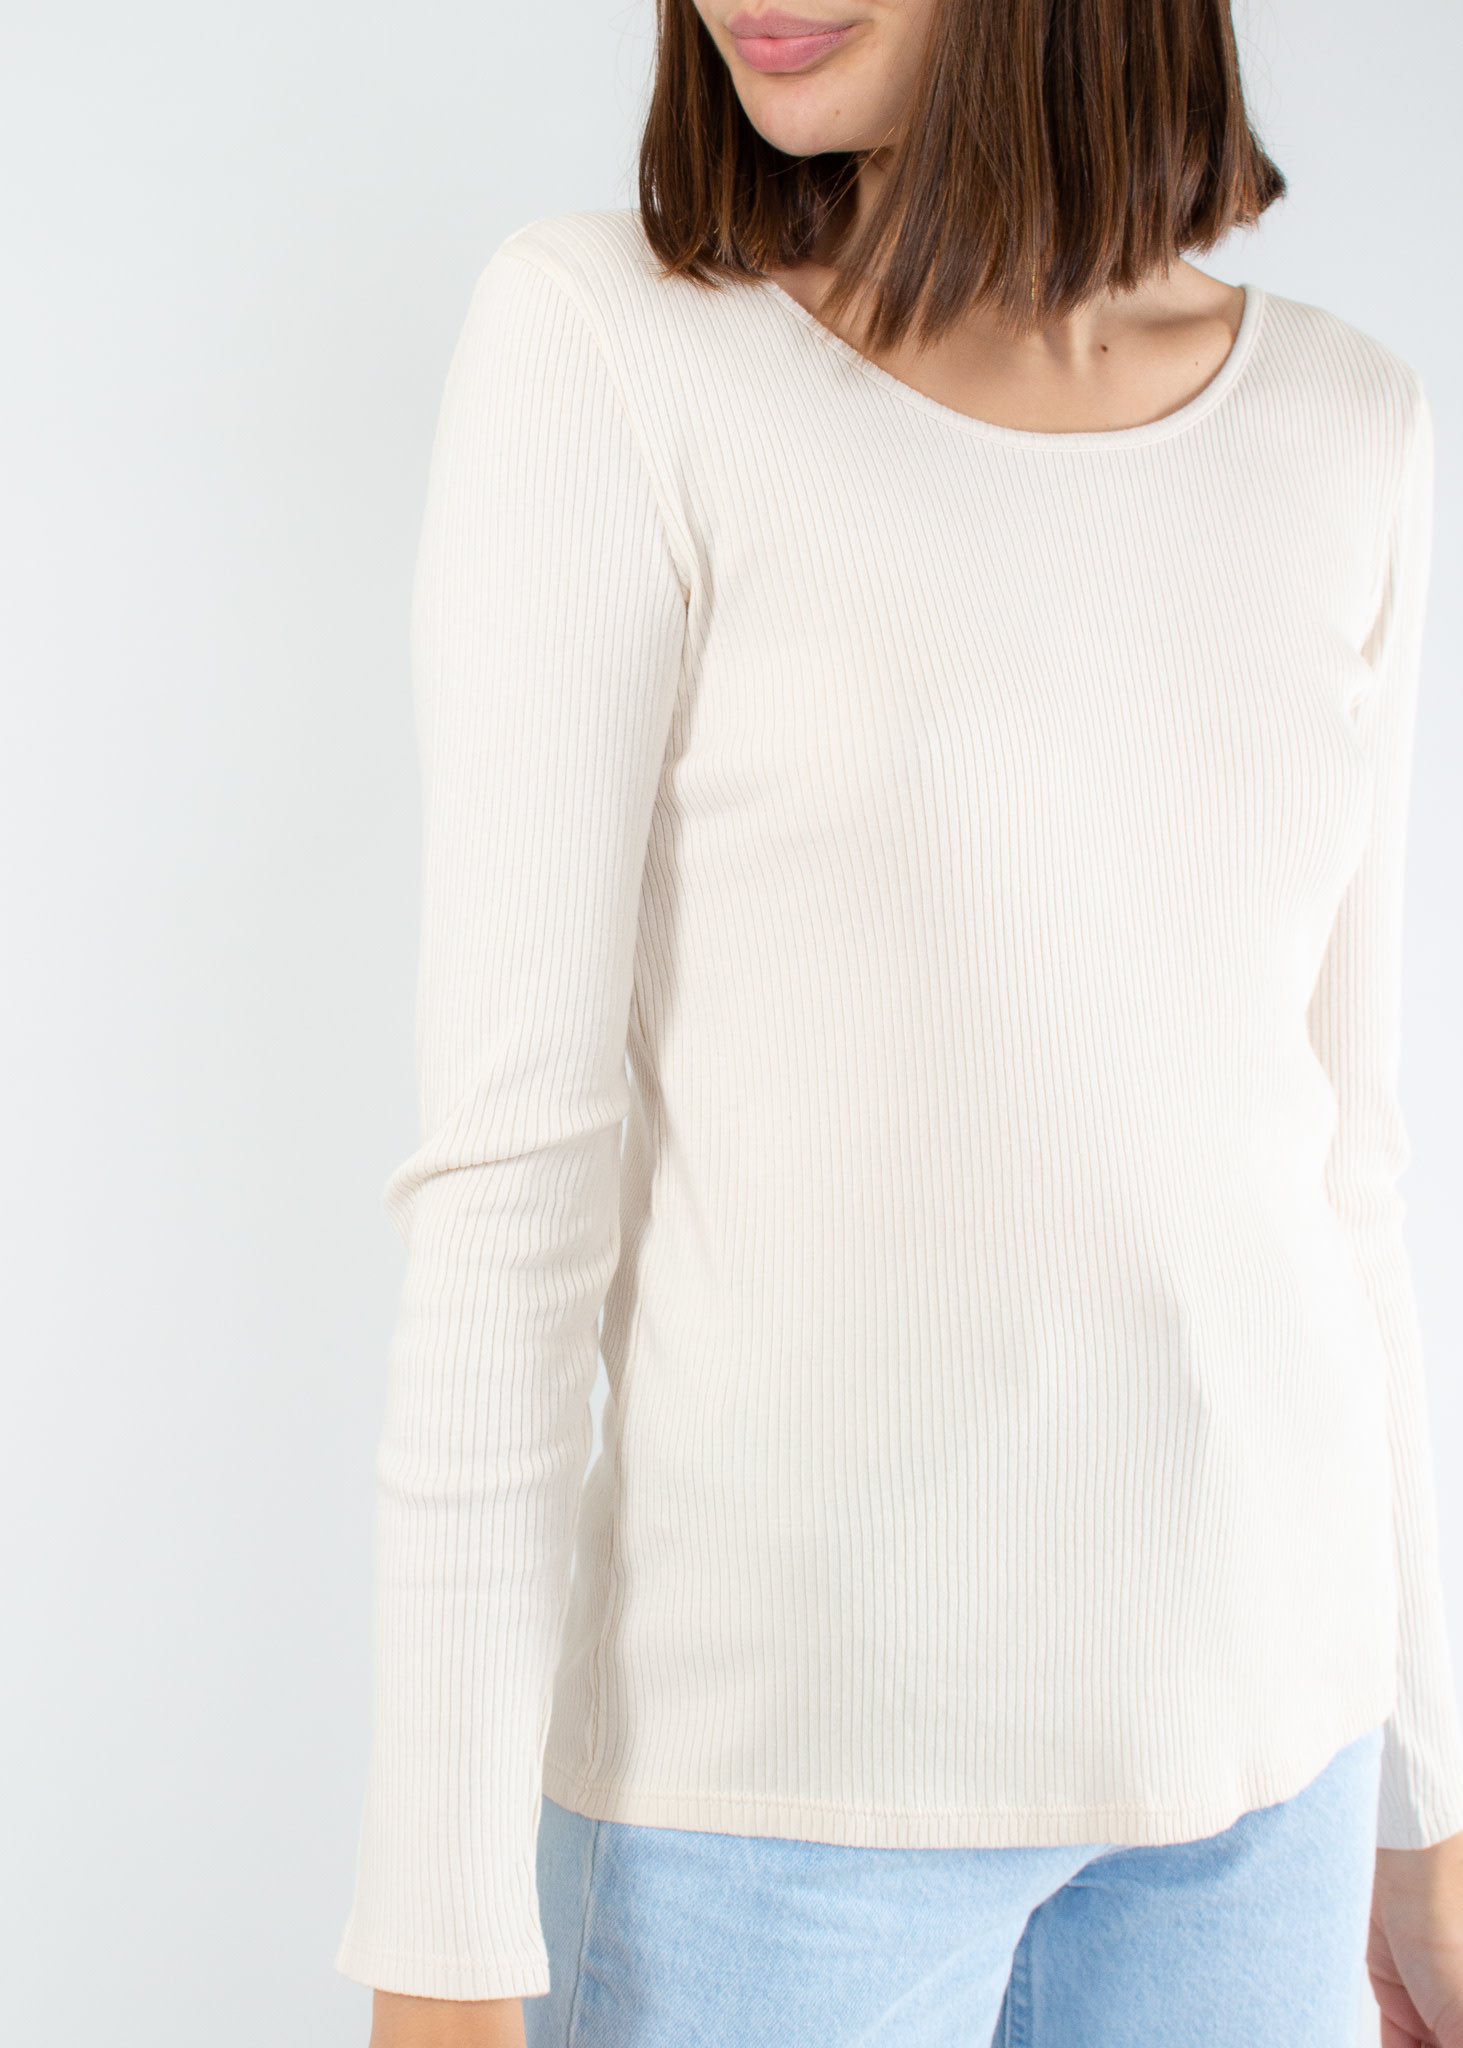 YERSE Long sleeve t-shirt with round neck